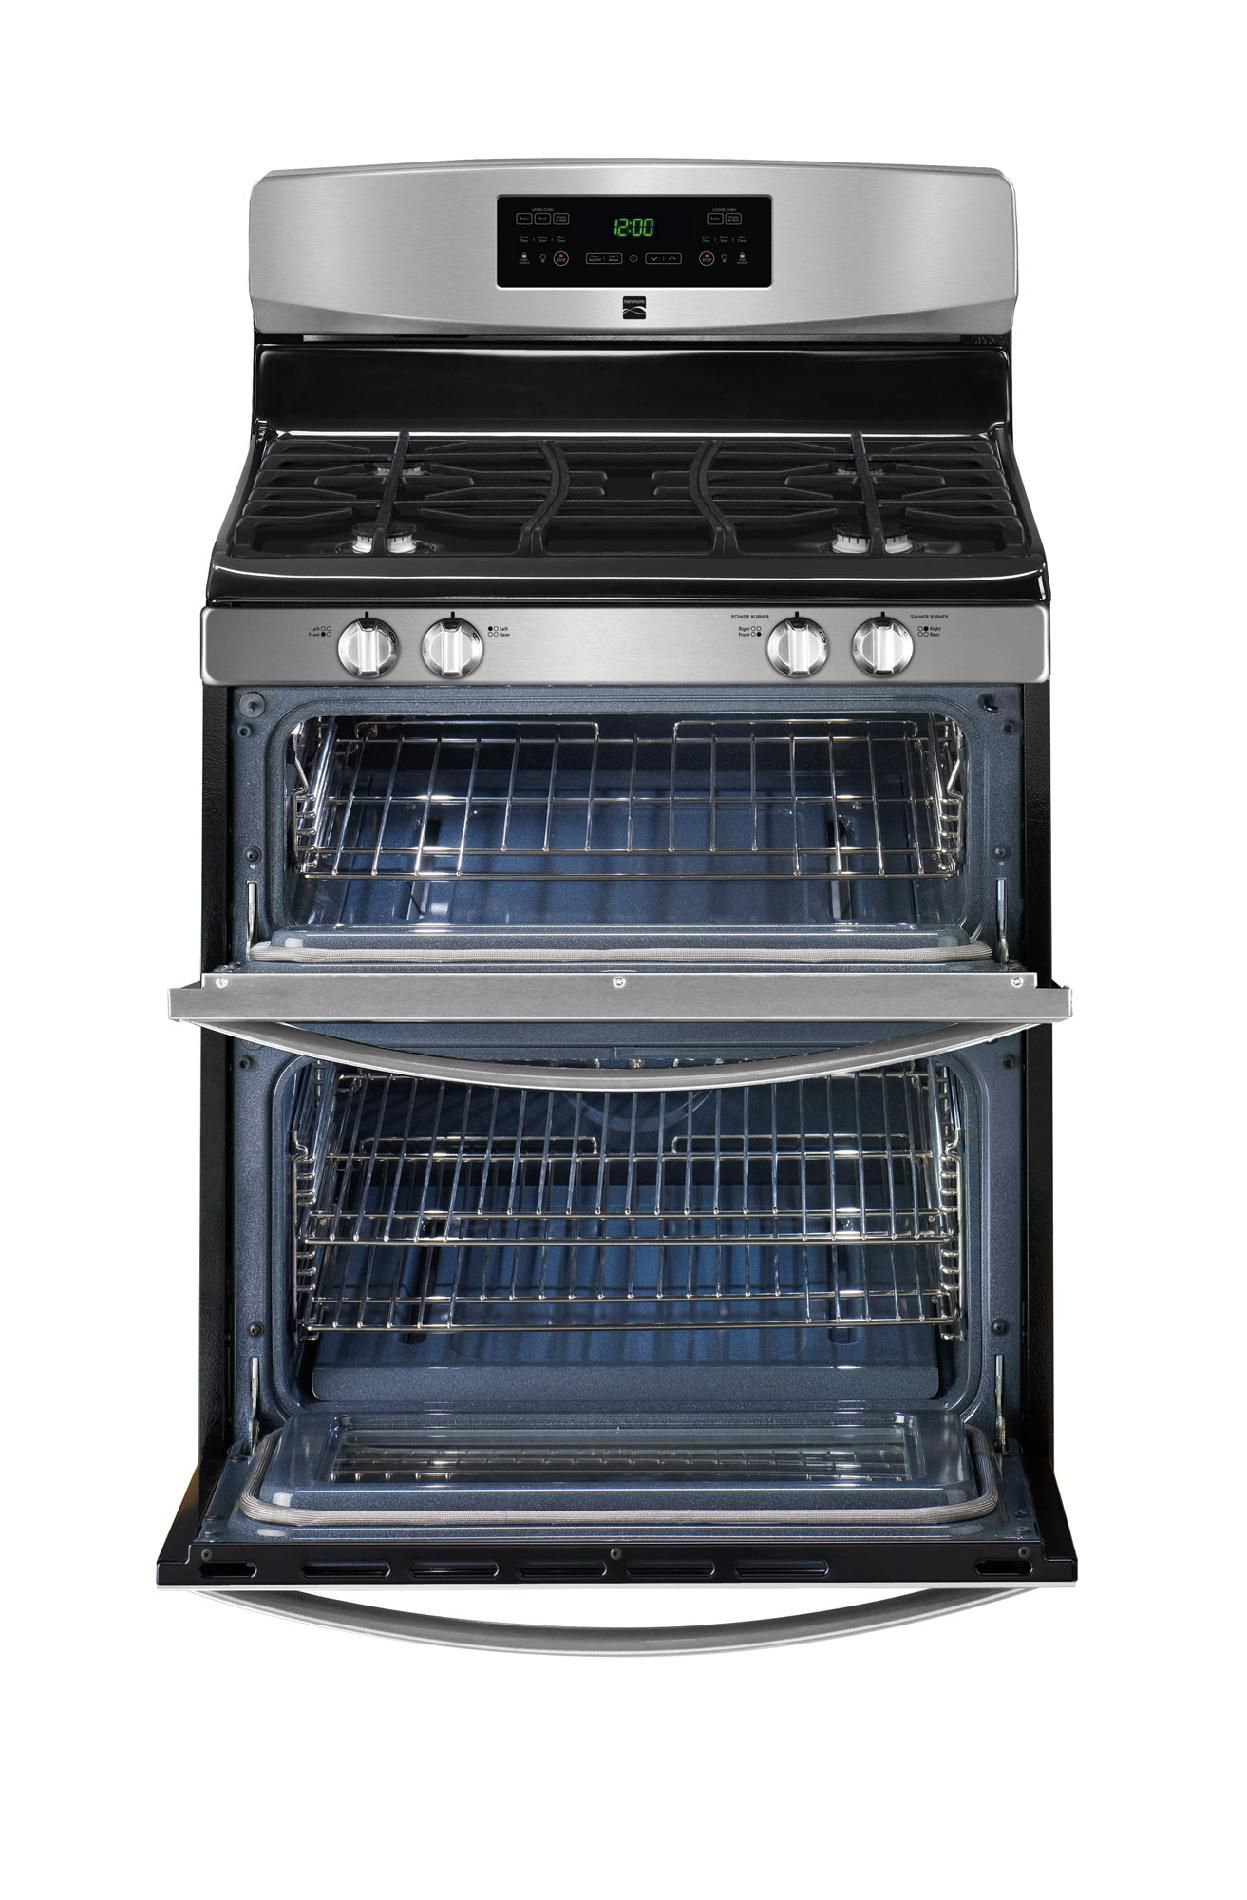 Kenmore 5.8 cu. ft. Double-Oven Gas Range